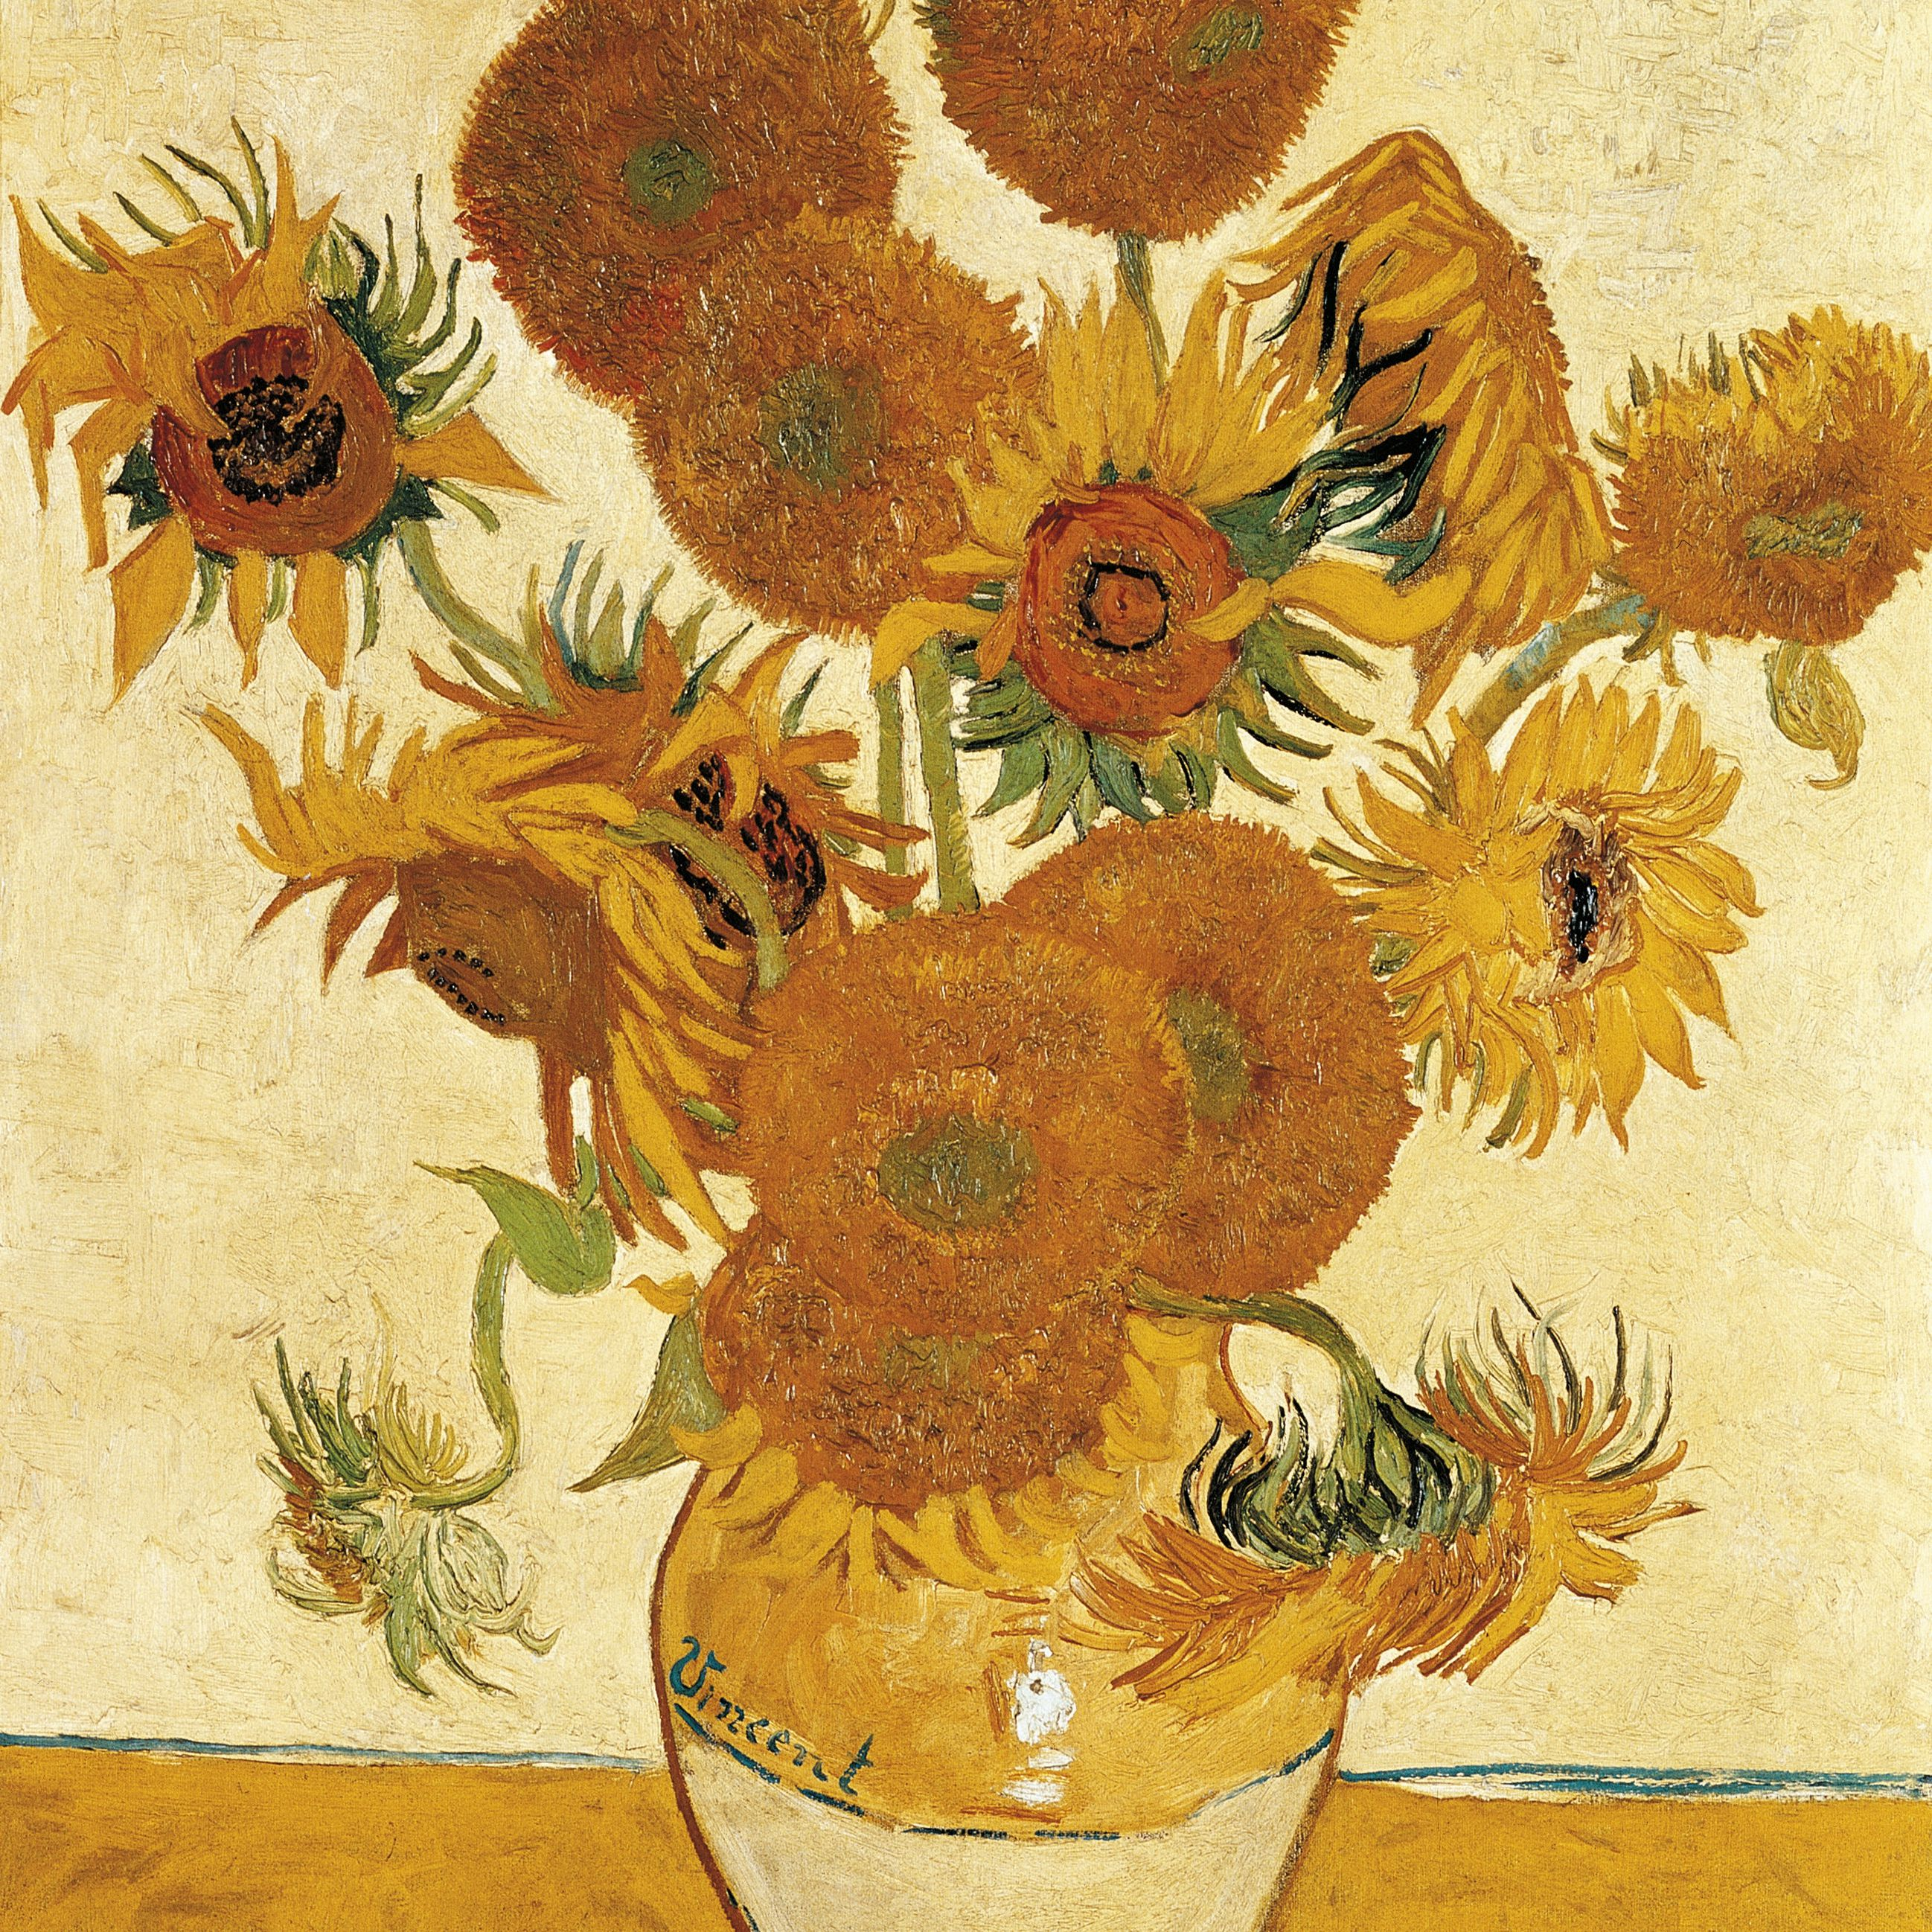 Yellow sunflowers in a yellow vase on a yellow table.